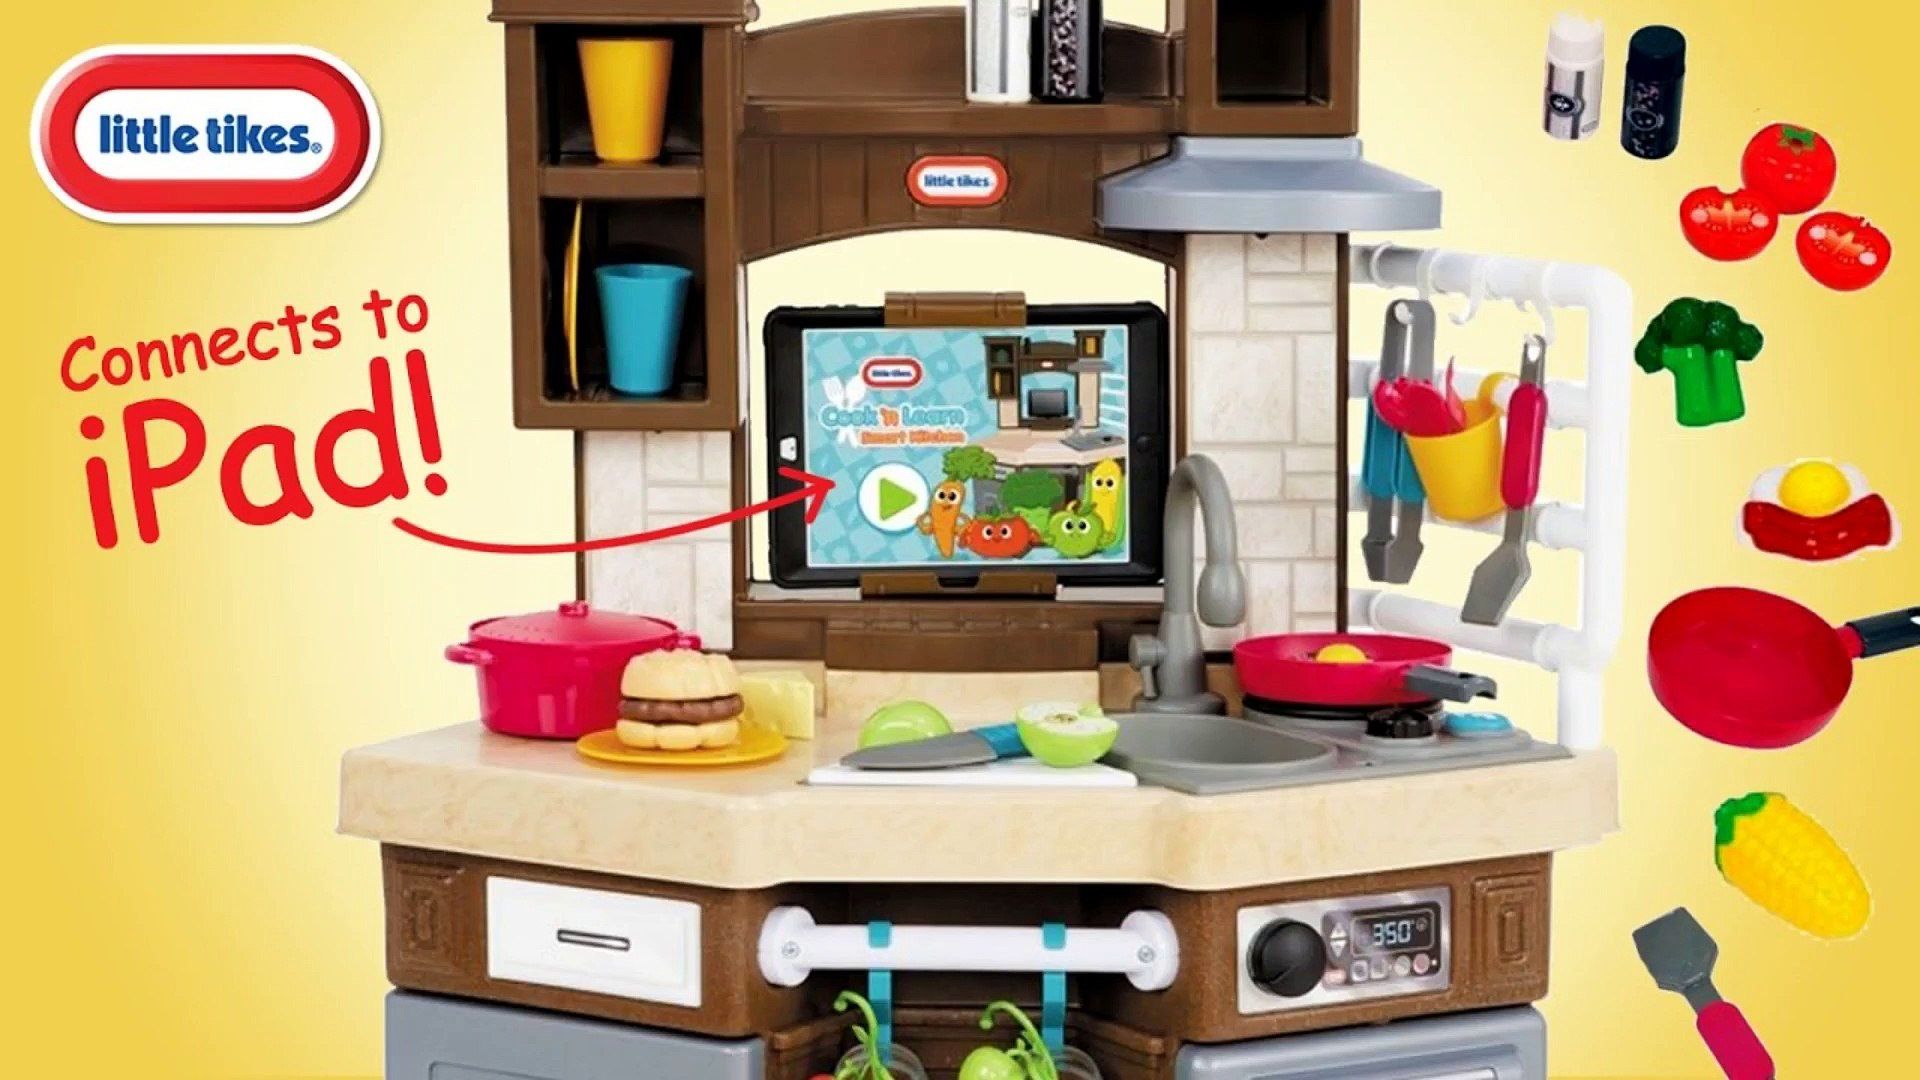 Little Tikes Cook n Learn Smart Kitchen iPad App Recipes   Unboxing Demo  Review